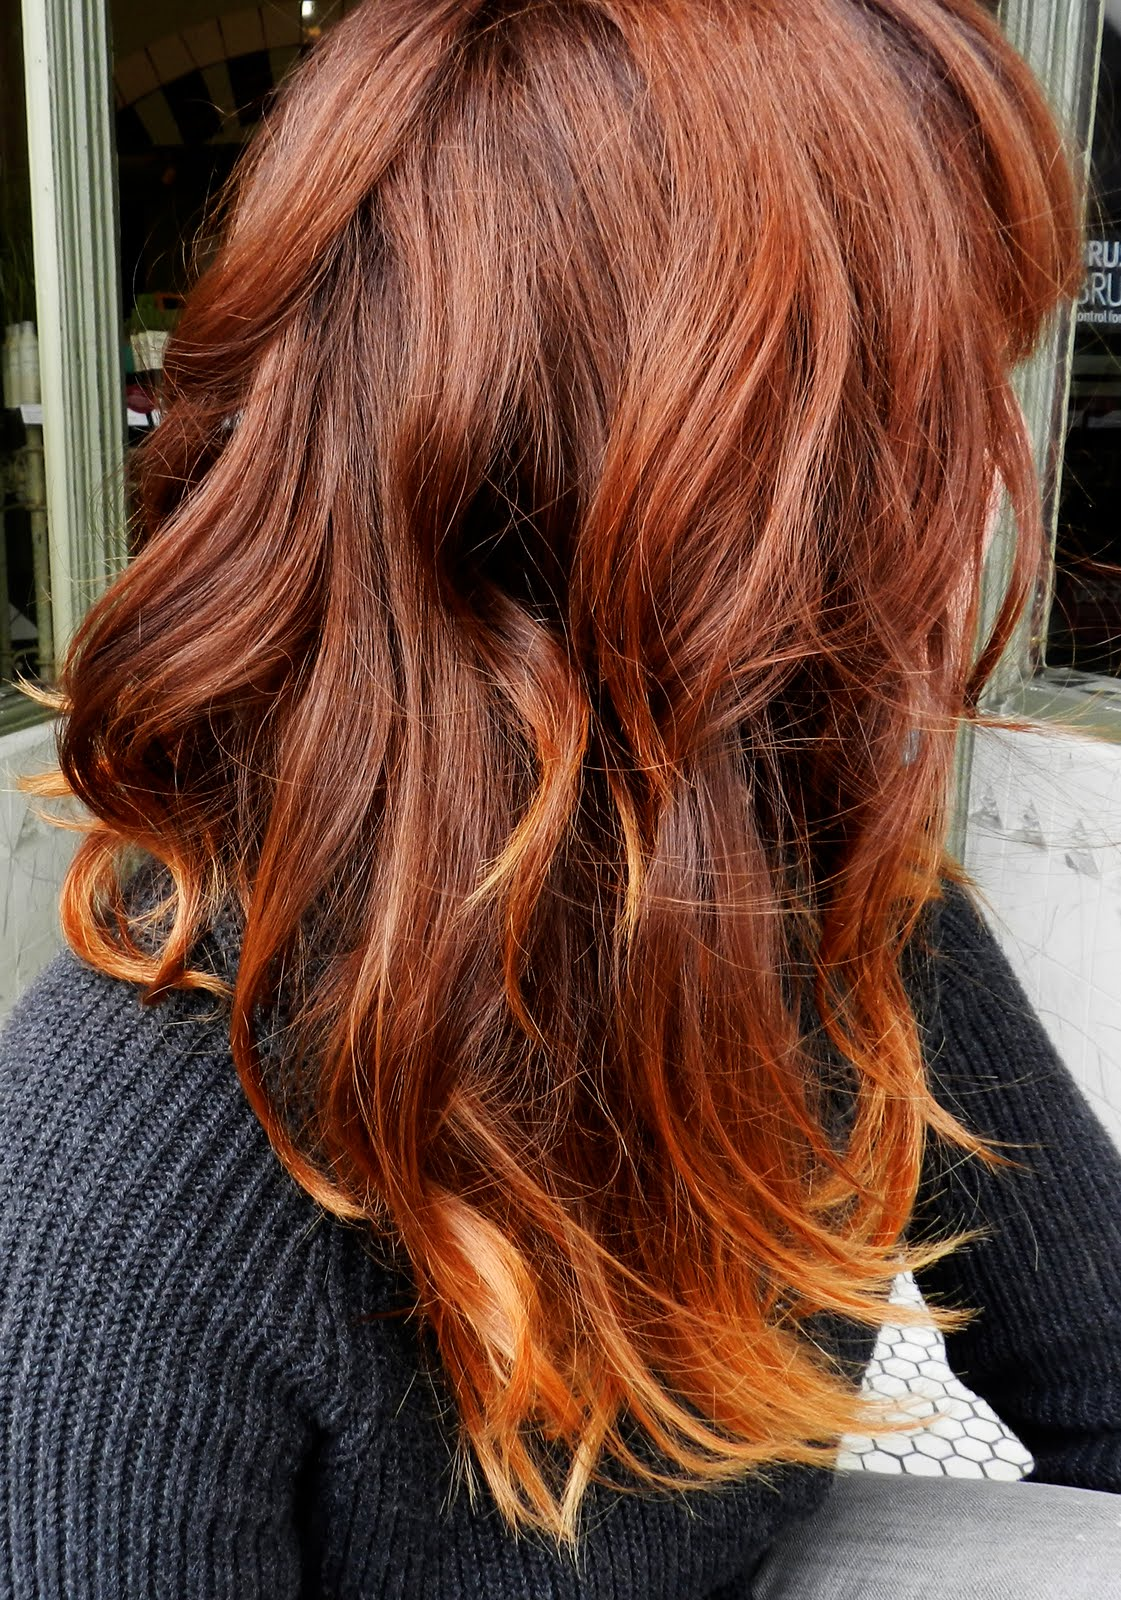 Brown hair with colored tips